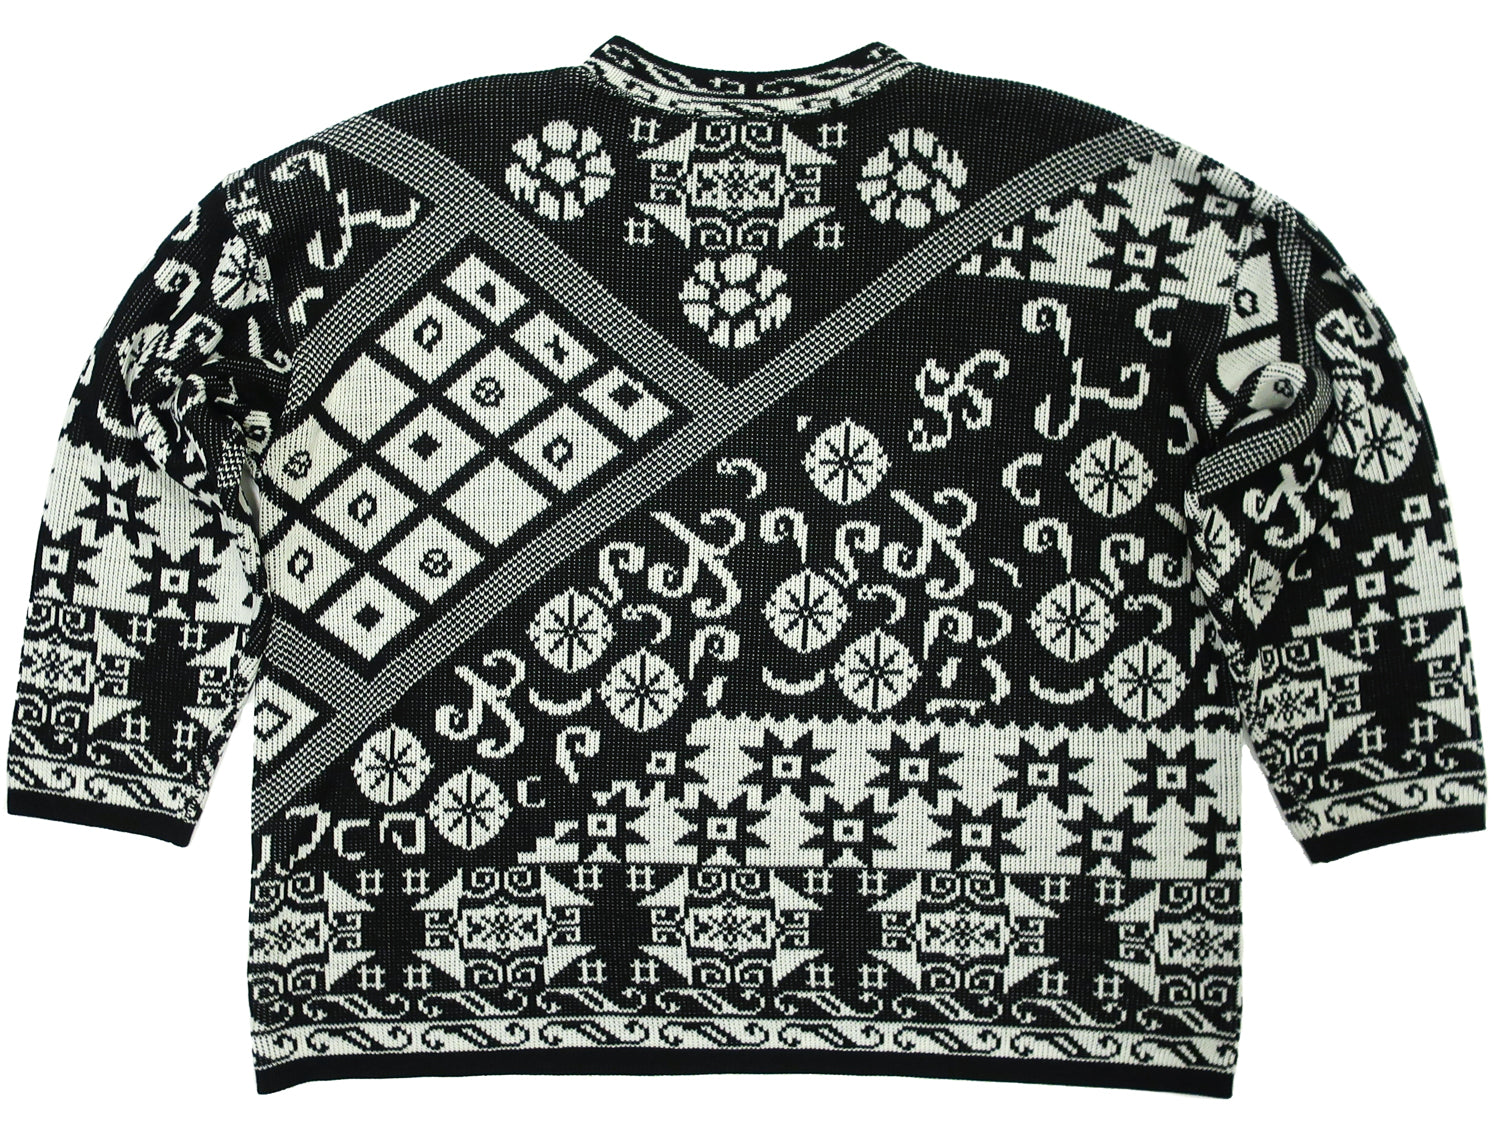 Second Room Vintage Clothing. Vintage oversize boxy crew neck sweater, with abstract print of florals, stars and swirls. Free North American shipping on all orders.